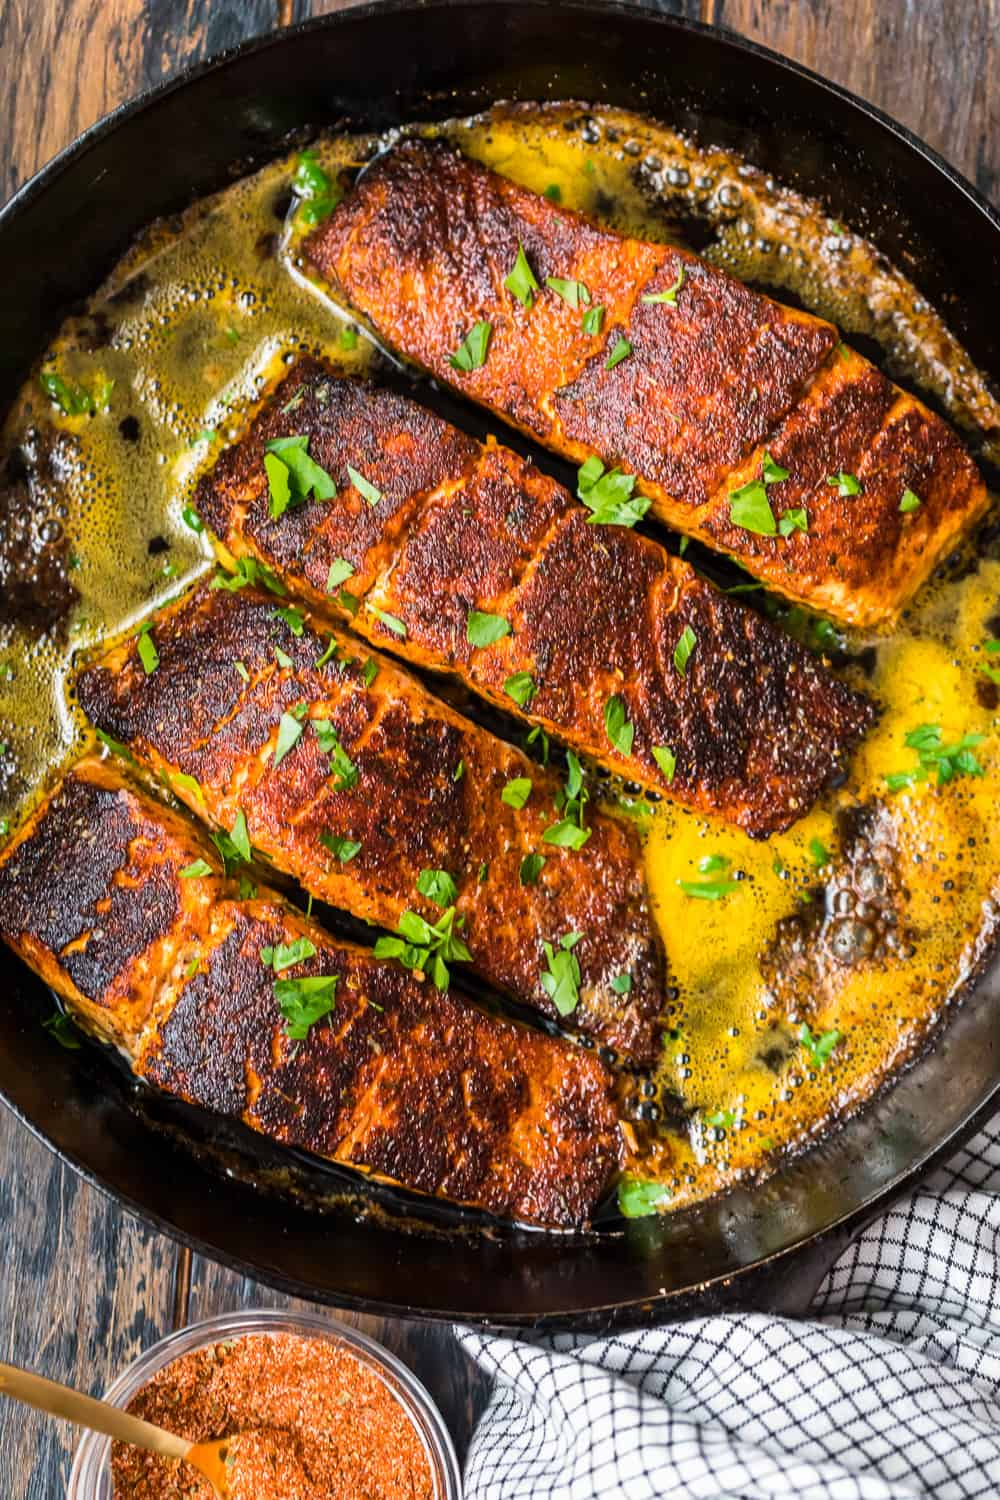 blackened seasoning on salmon